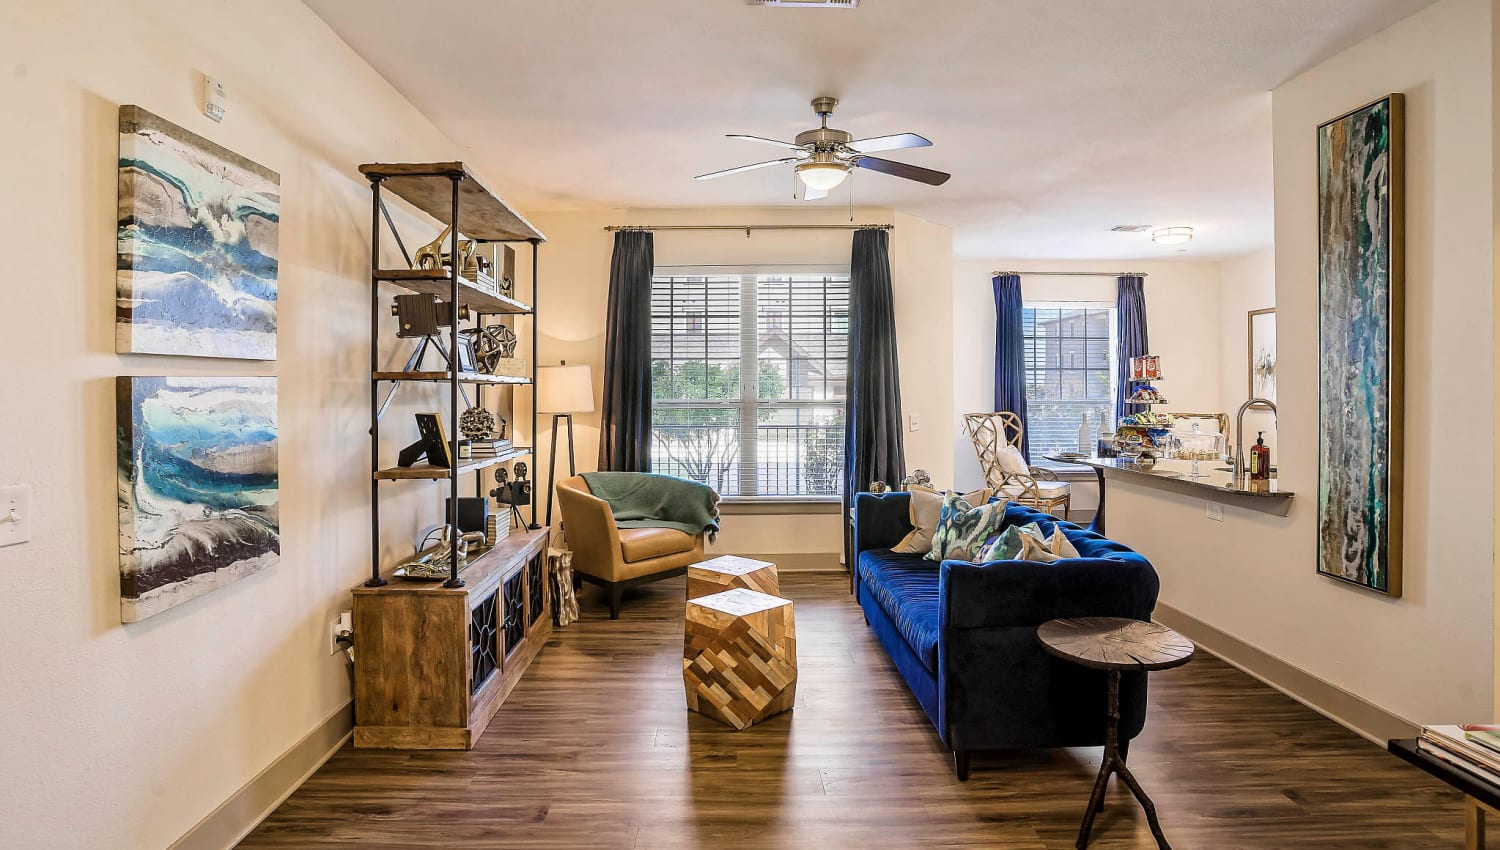 Well-furnished living space with a ceiling fan in a model home at Sundance Creek in Midland, Texas